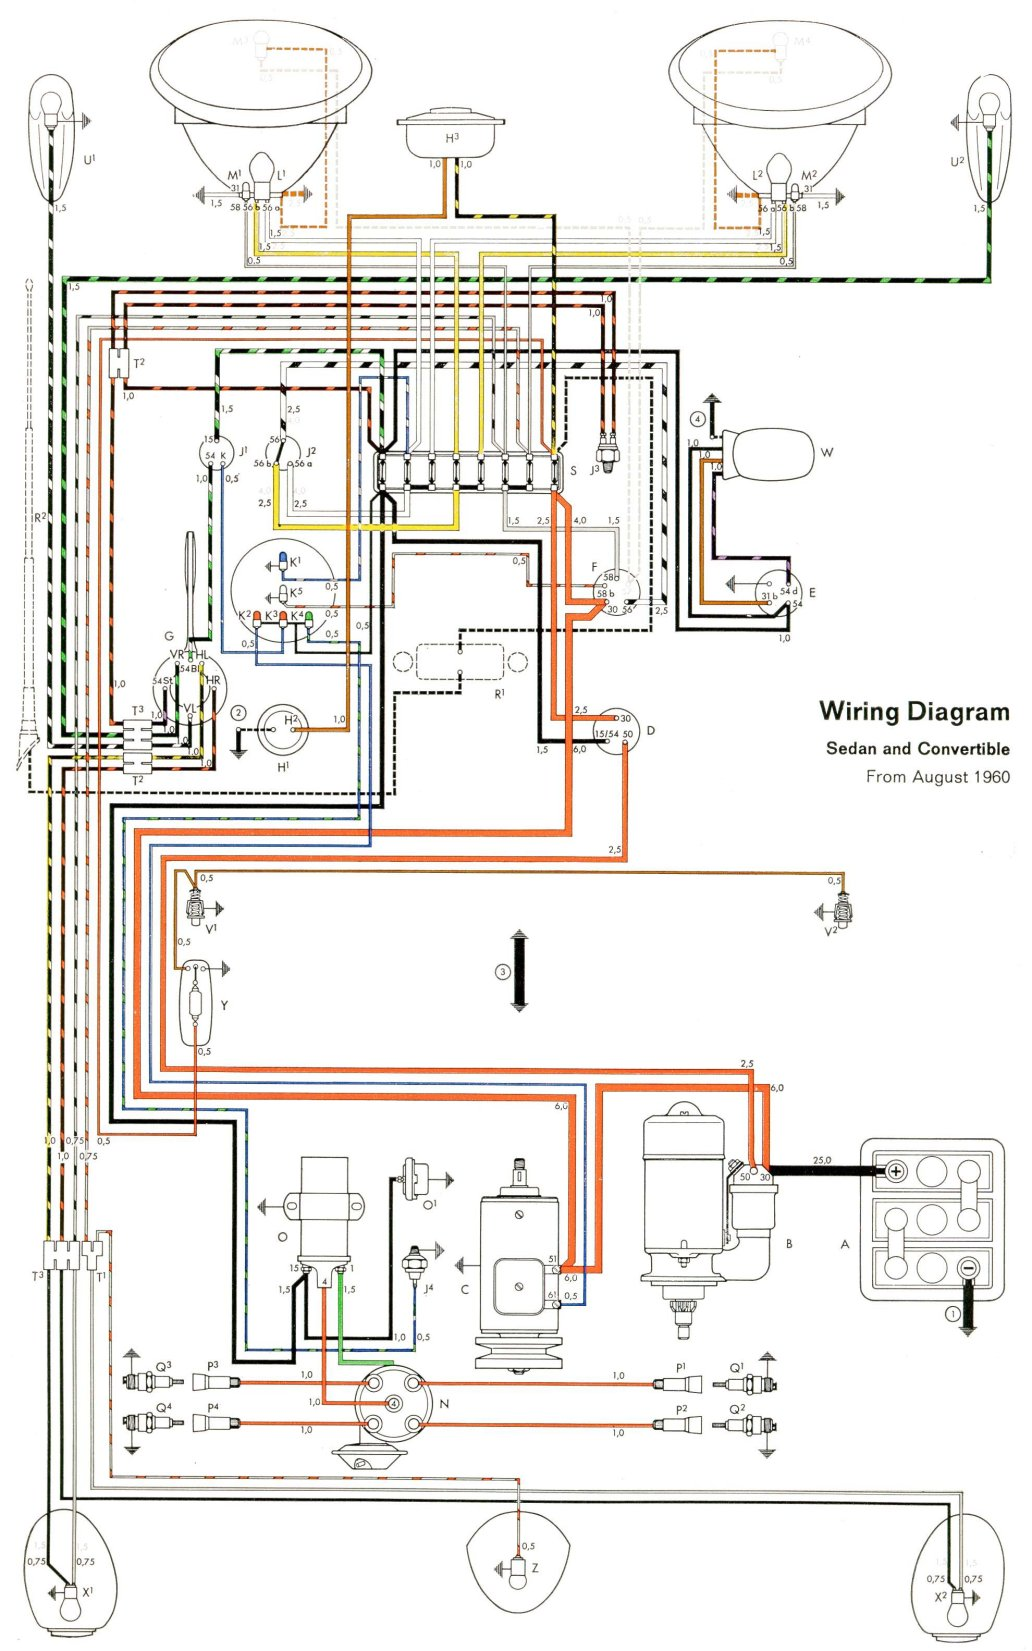 Vw Engine Wiring Diagram Schemes Transporter T4 1974 Experts Of U2022 Rh Evilcloud Co Uk Volkswagen